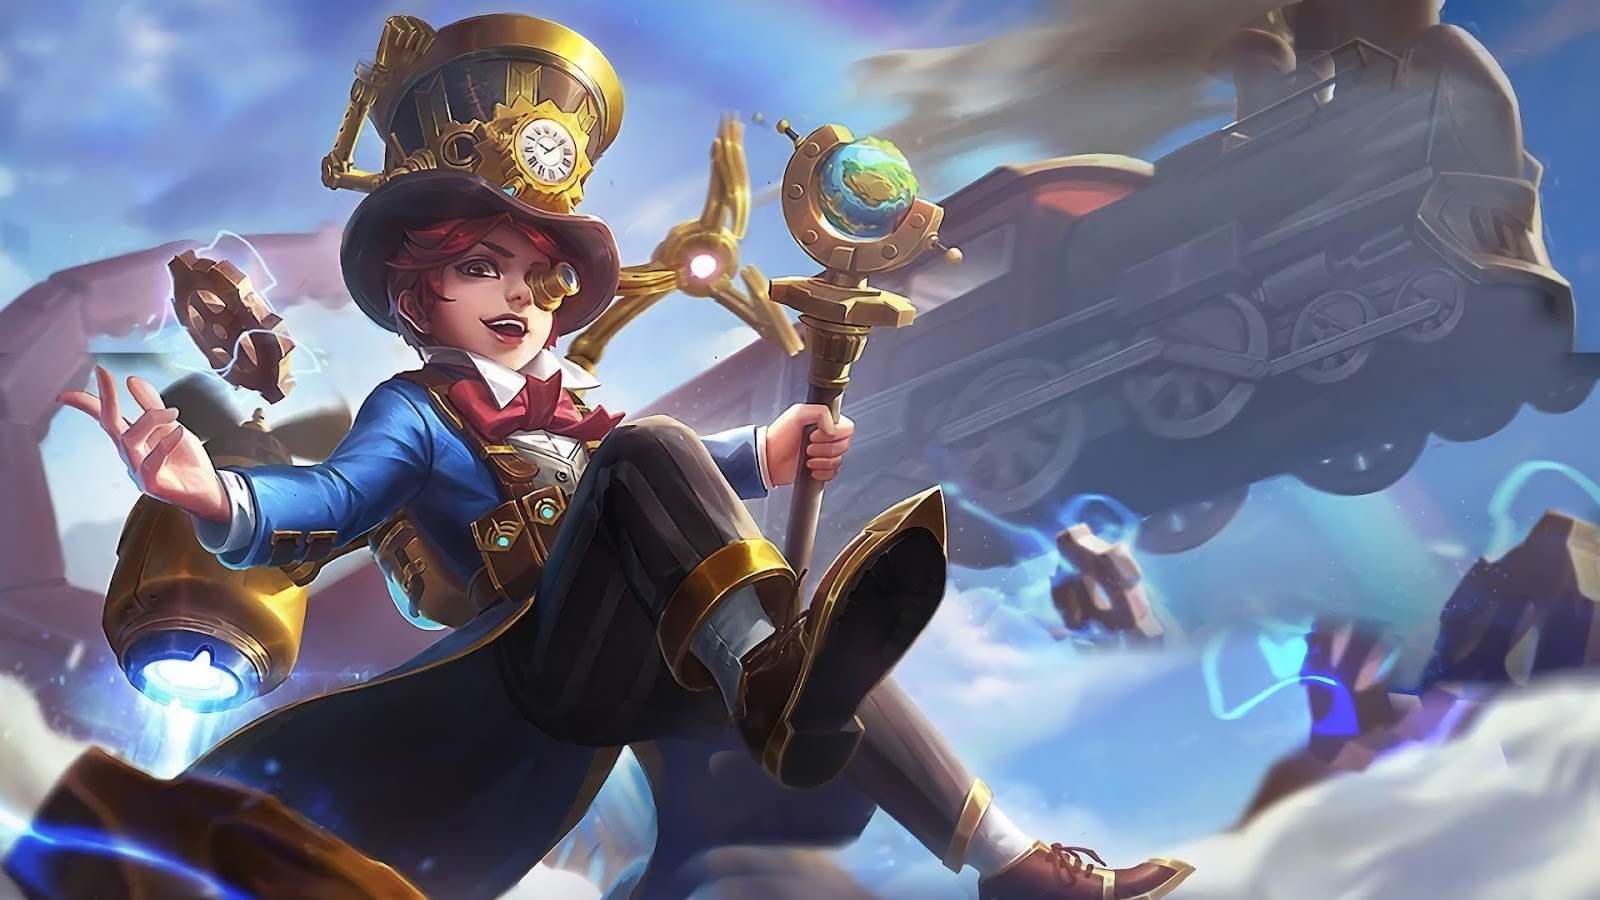 Wallpaper Harley Great Inventor Skin Mobile Legends HD for PC